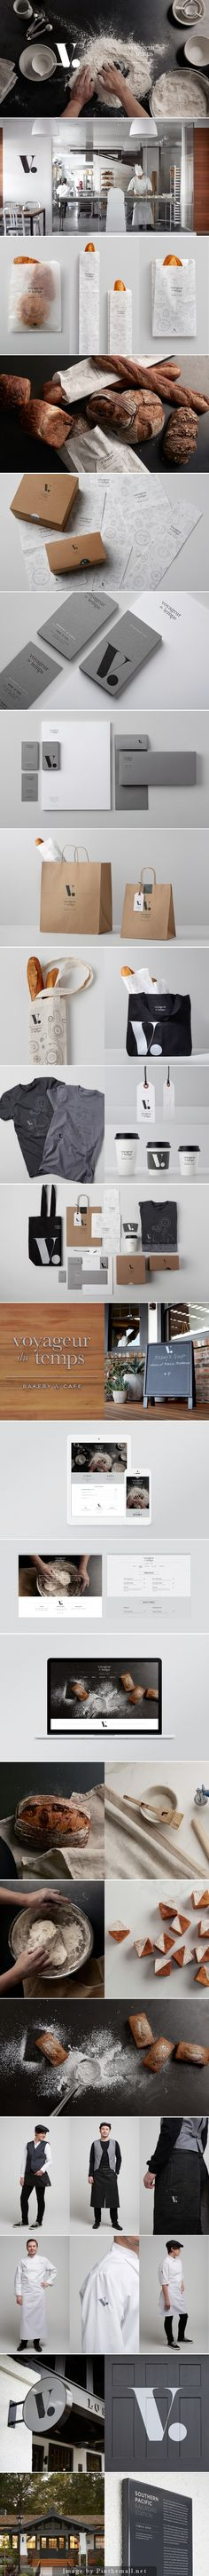 Voyageur-du-temps I want some bread now #identity #packaging #branding PD